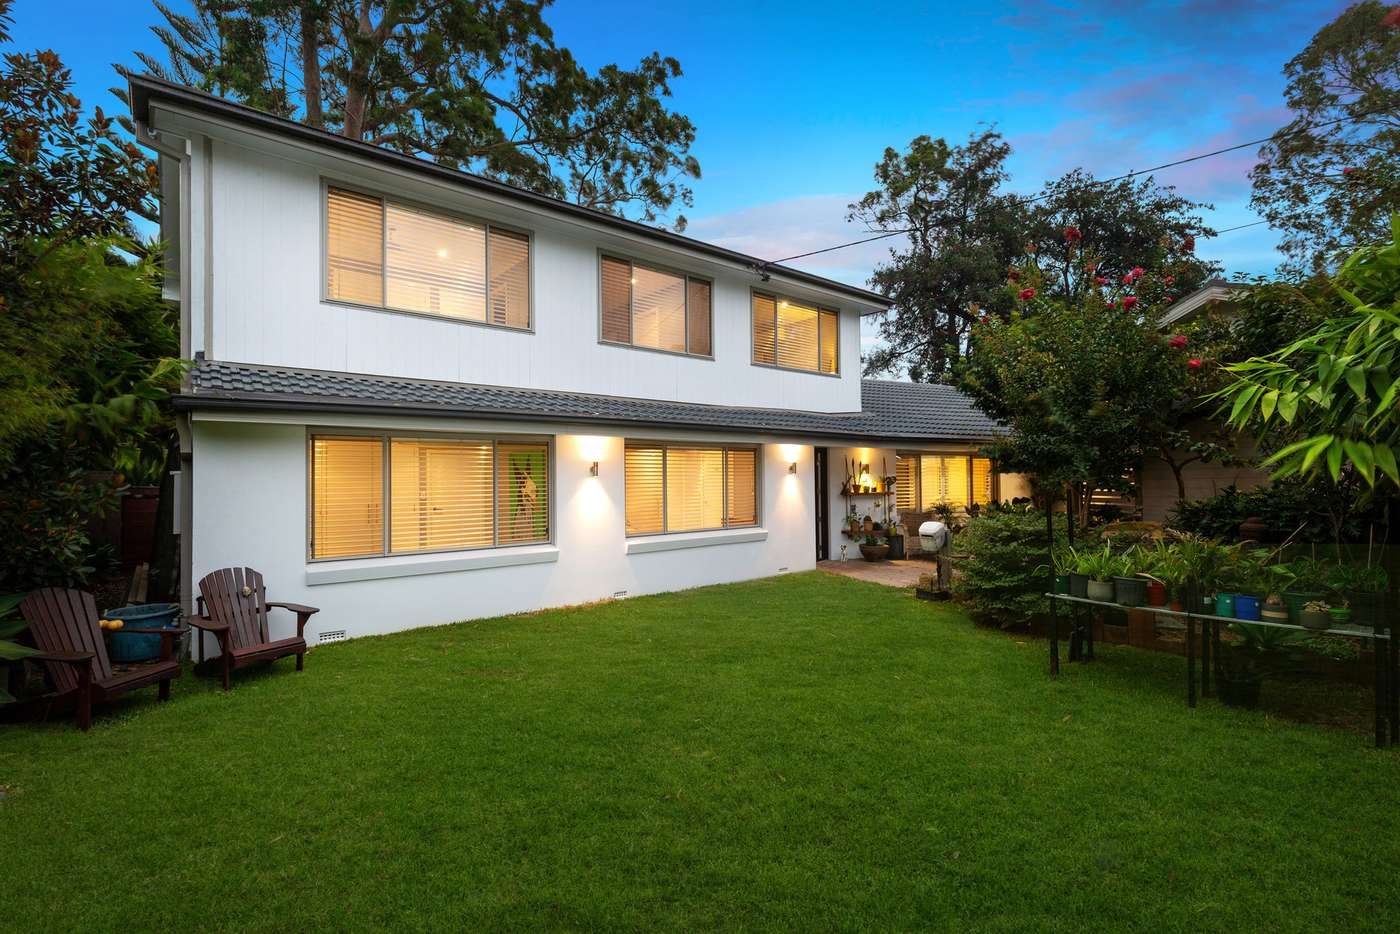 Main view of Homely house listing, 2 Cutler Close, Westleigh NSW 2120